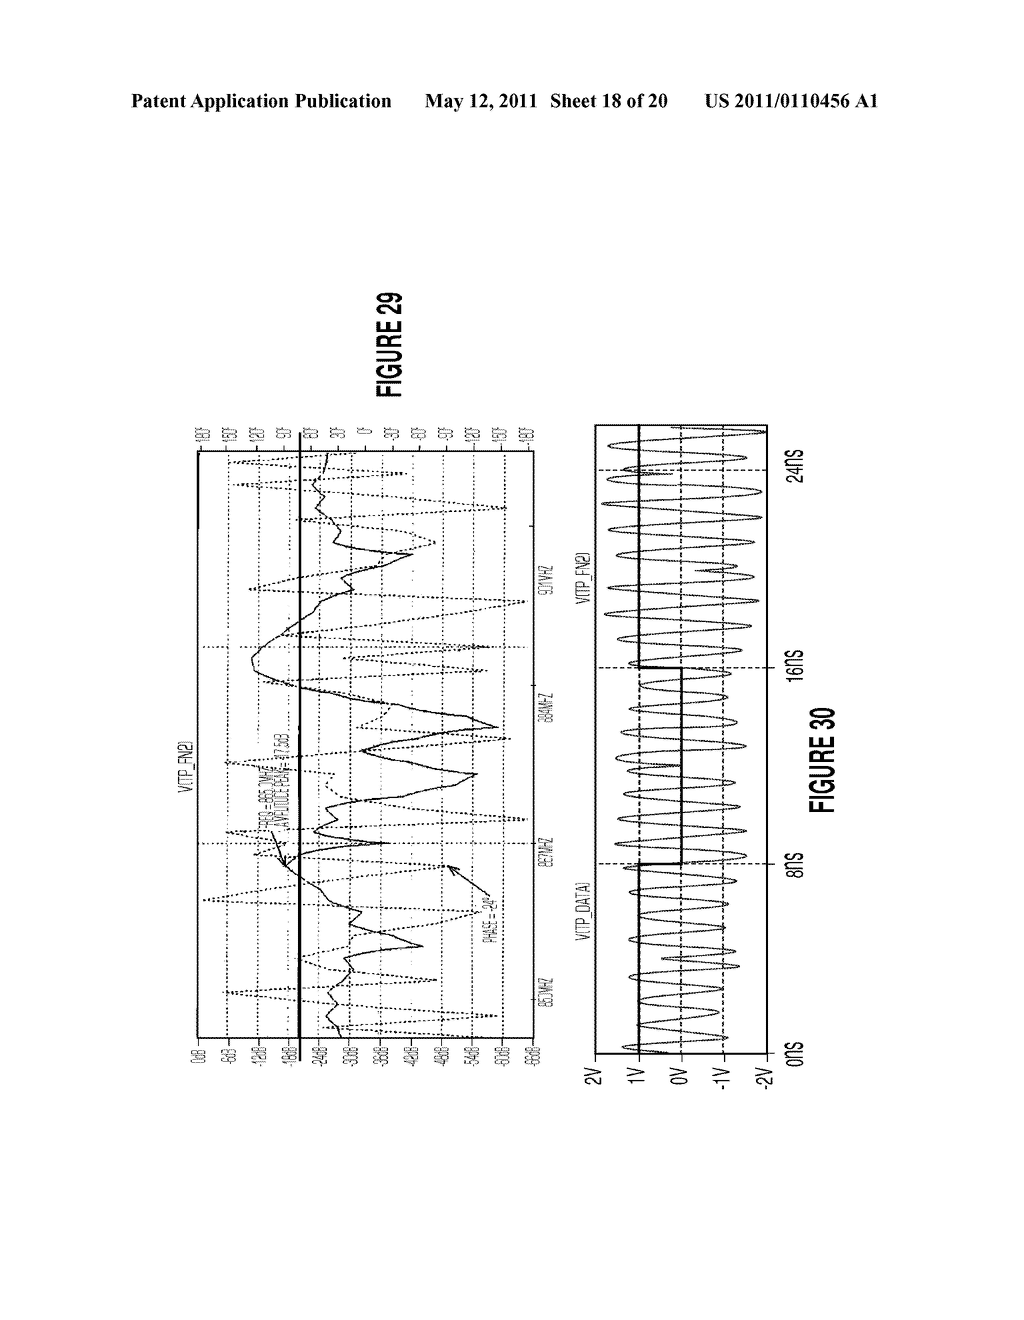 Common Wave and Sideband Mitigation Communication Systems And Methods For Increasing Communication Speeds, Spectral Efficiency and Enabling Other Benefits - diagram, schematic, and image 19